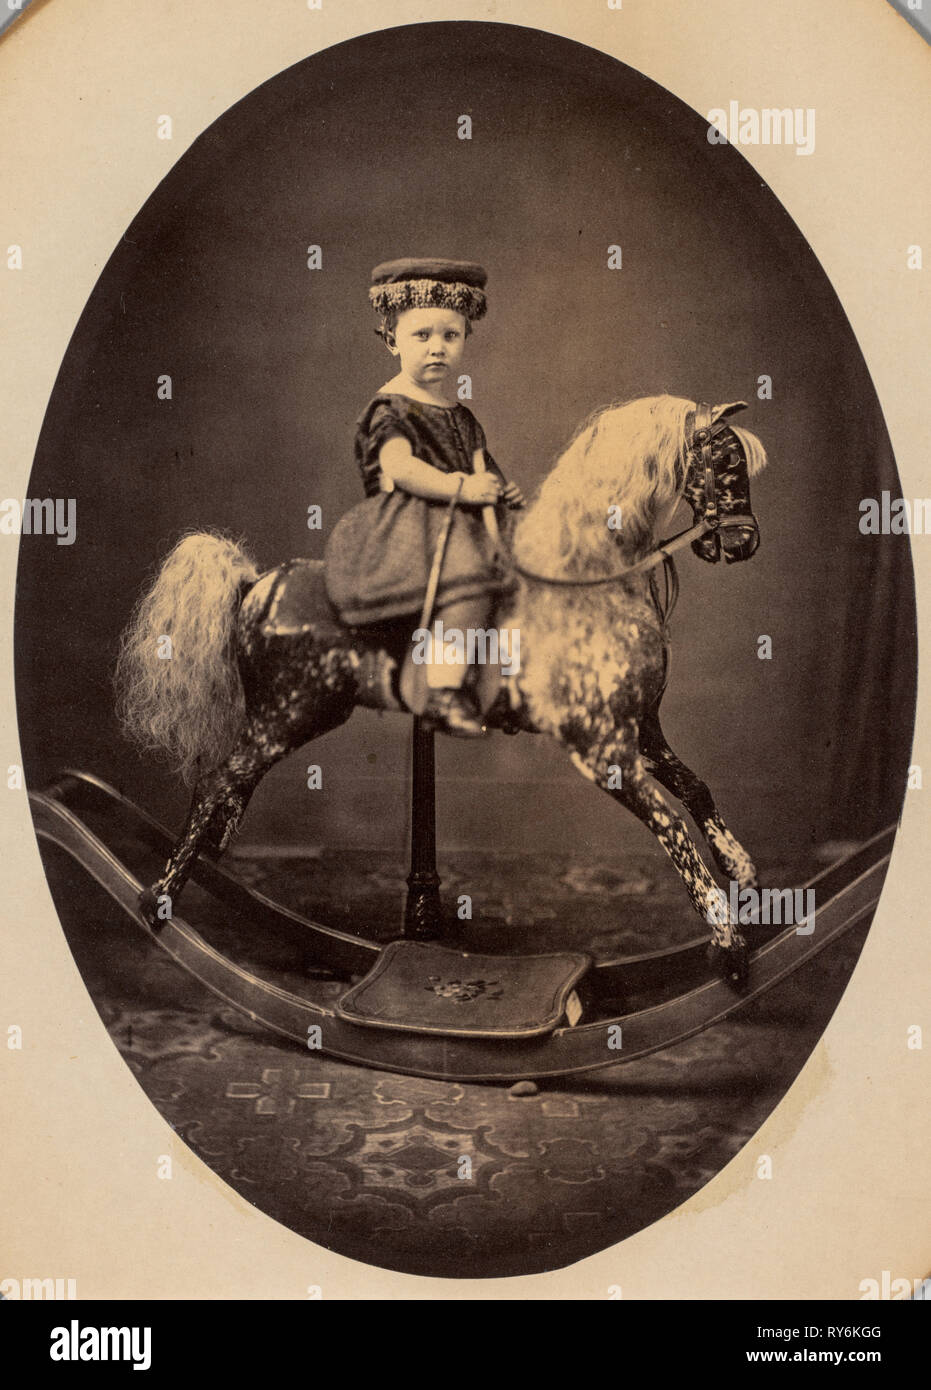 Francis Wayland Sherman at the Age of 2 Years 10 Months, 1862. H.N. Roberts (American, active 1860s). Albumen print from wet collodion negative; image: 18.6 x 13.3 cm (7 5/16 x 5 1/4 in.); mounted: 25.1 x 19.9 cm (9 7/8 x 7 13/16 in.); matted: 50.8 x 40.6 cm (20 x 16 in Stock Photo